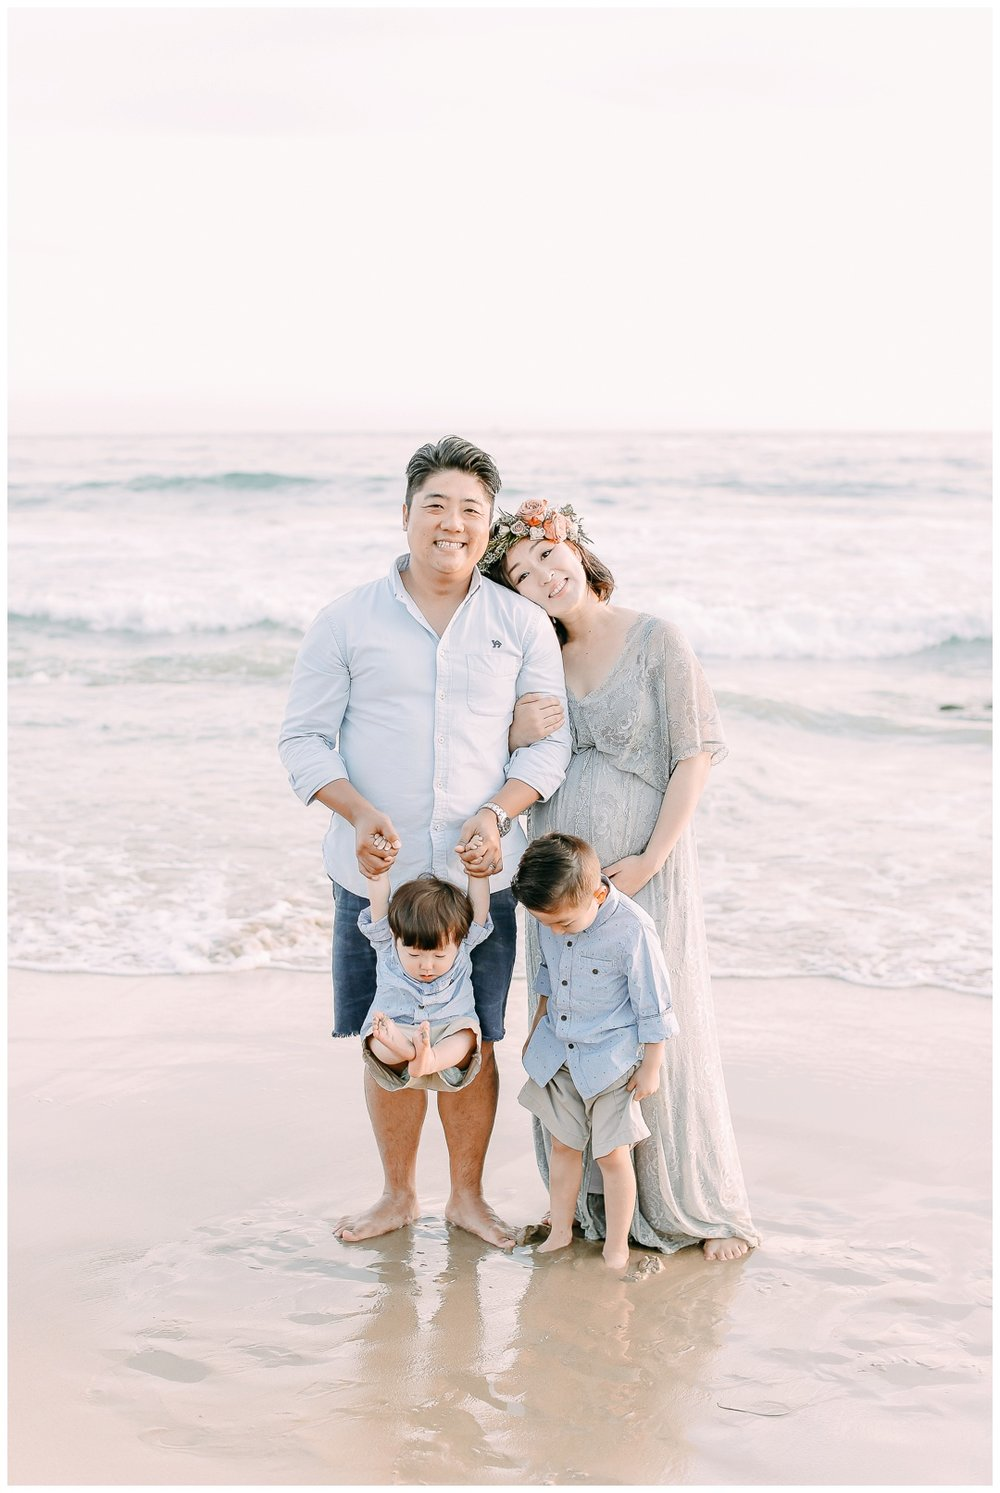 Newport_Beach_Maternity_Photographer_Orange_County_Maternity_Photography_Cori_Kleckner_Photography_Orange_County_Family_Photographer_Beach_Maternity_Session_1123.jpg